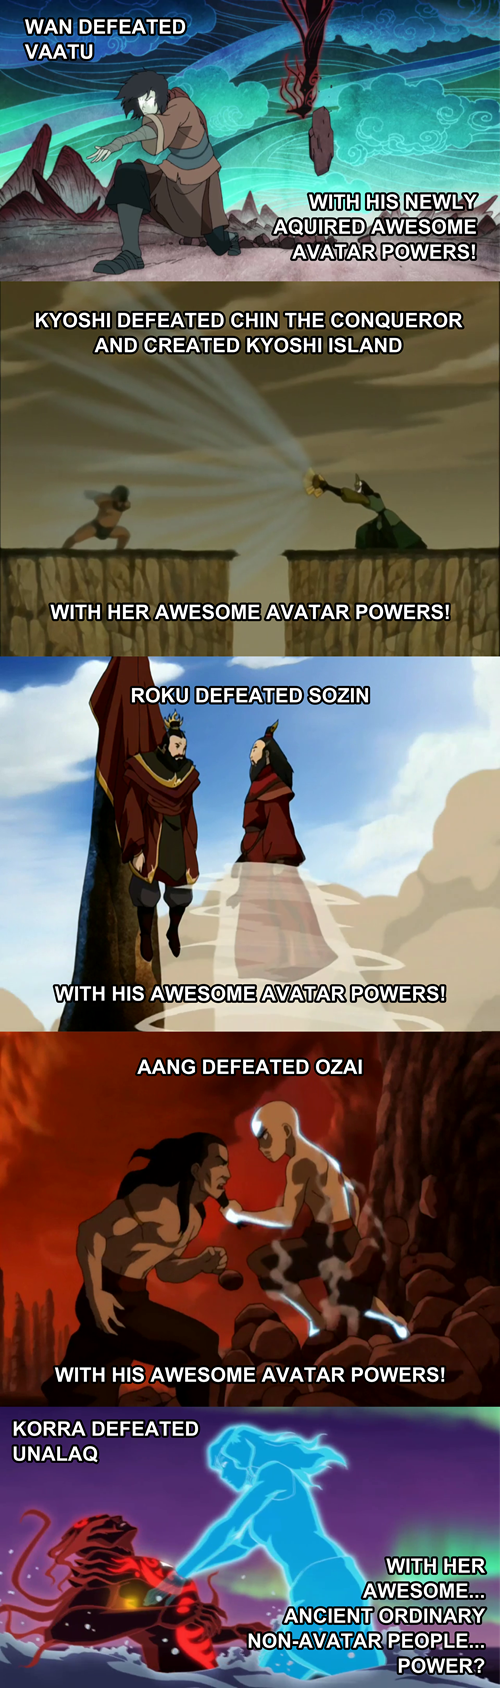 Korra's One of a Kind